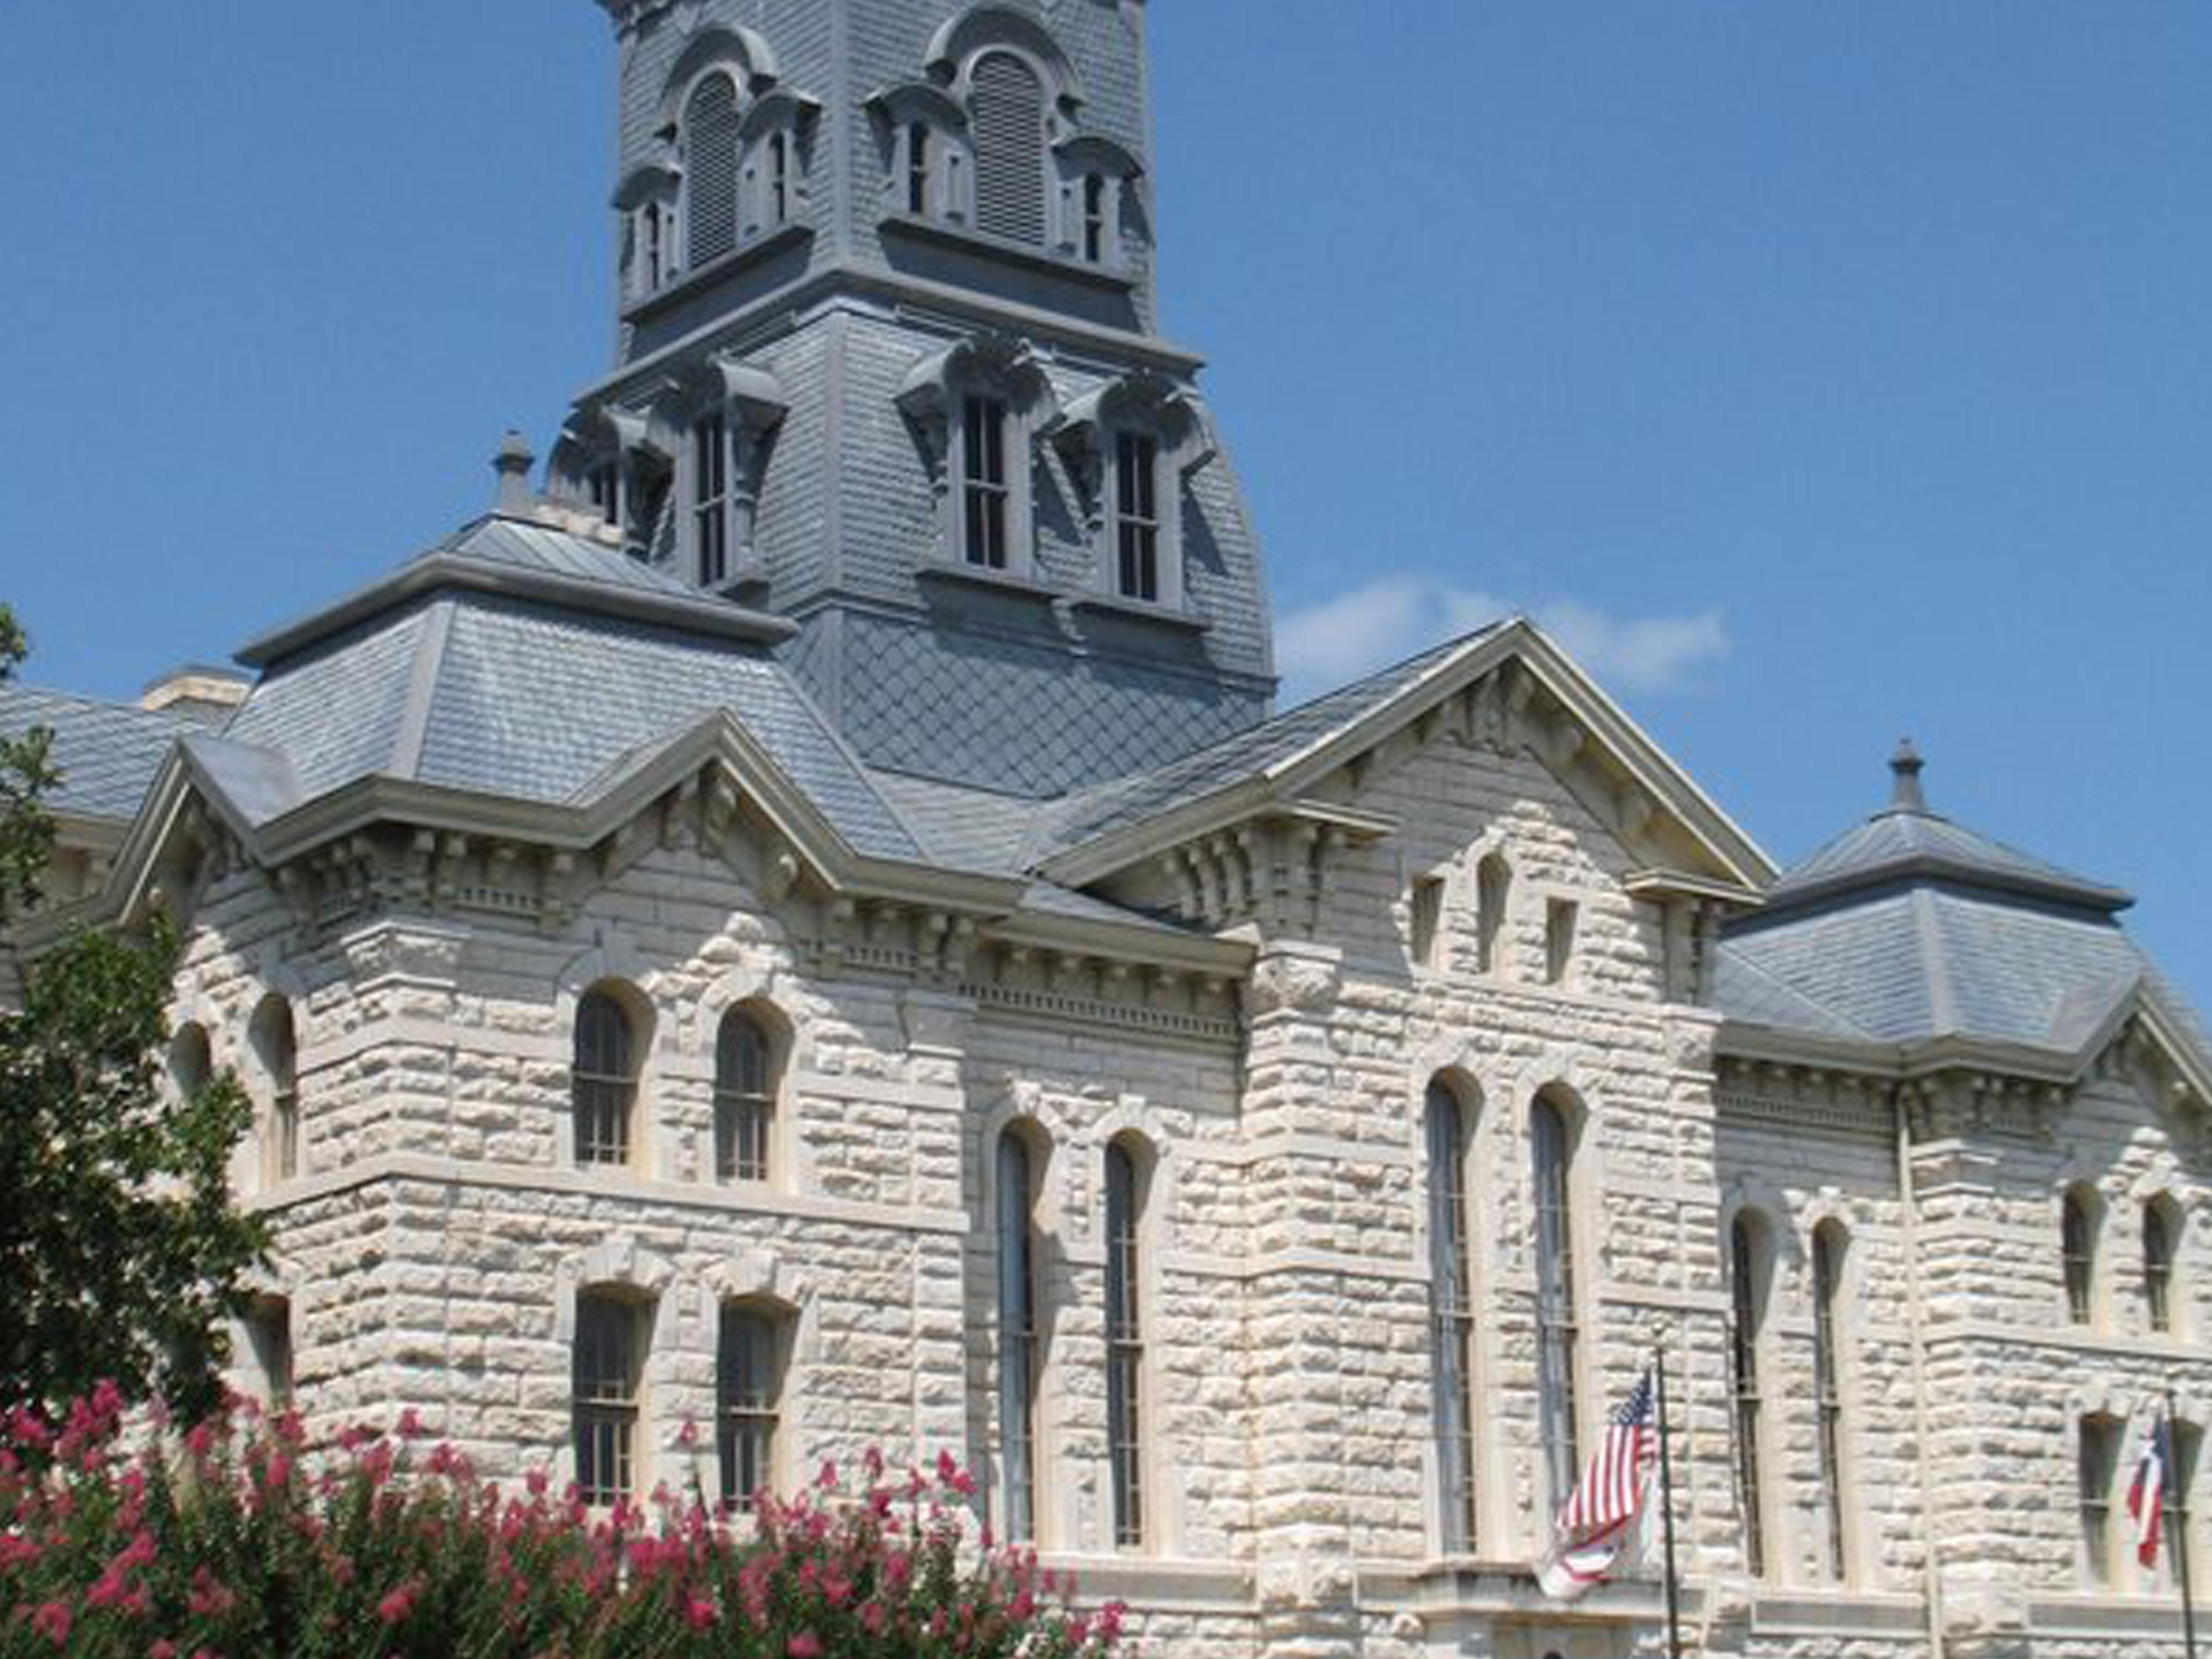 Be Sure To See The Historic Granbury Courthouse While In Town